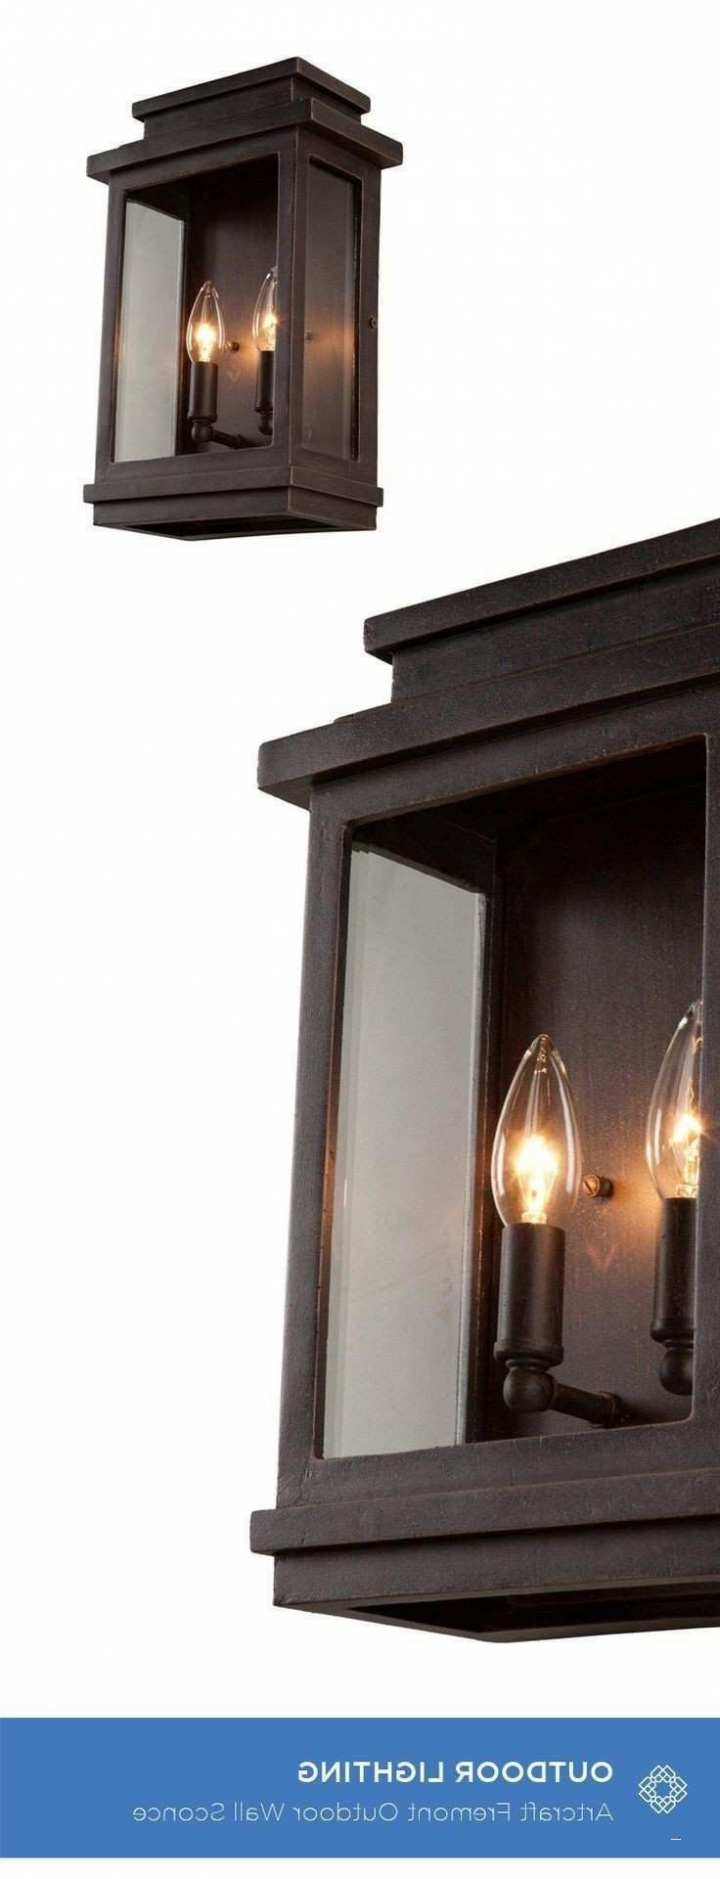 Most Popular Large Outdoor Lanterns Luxury Home Design Outdoor Light Timer Luxury Intended For Outdoor Timer Lanterns (View 18 of 20)